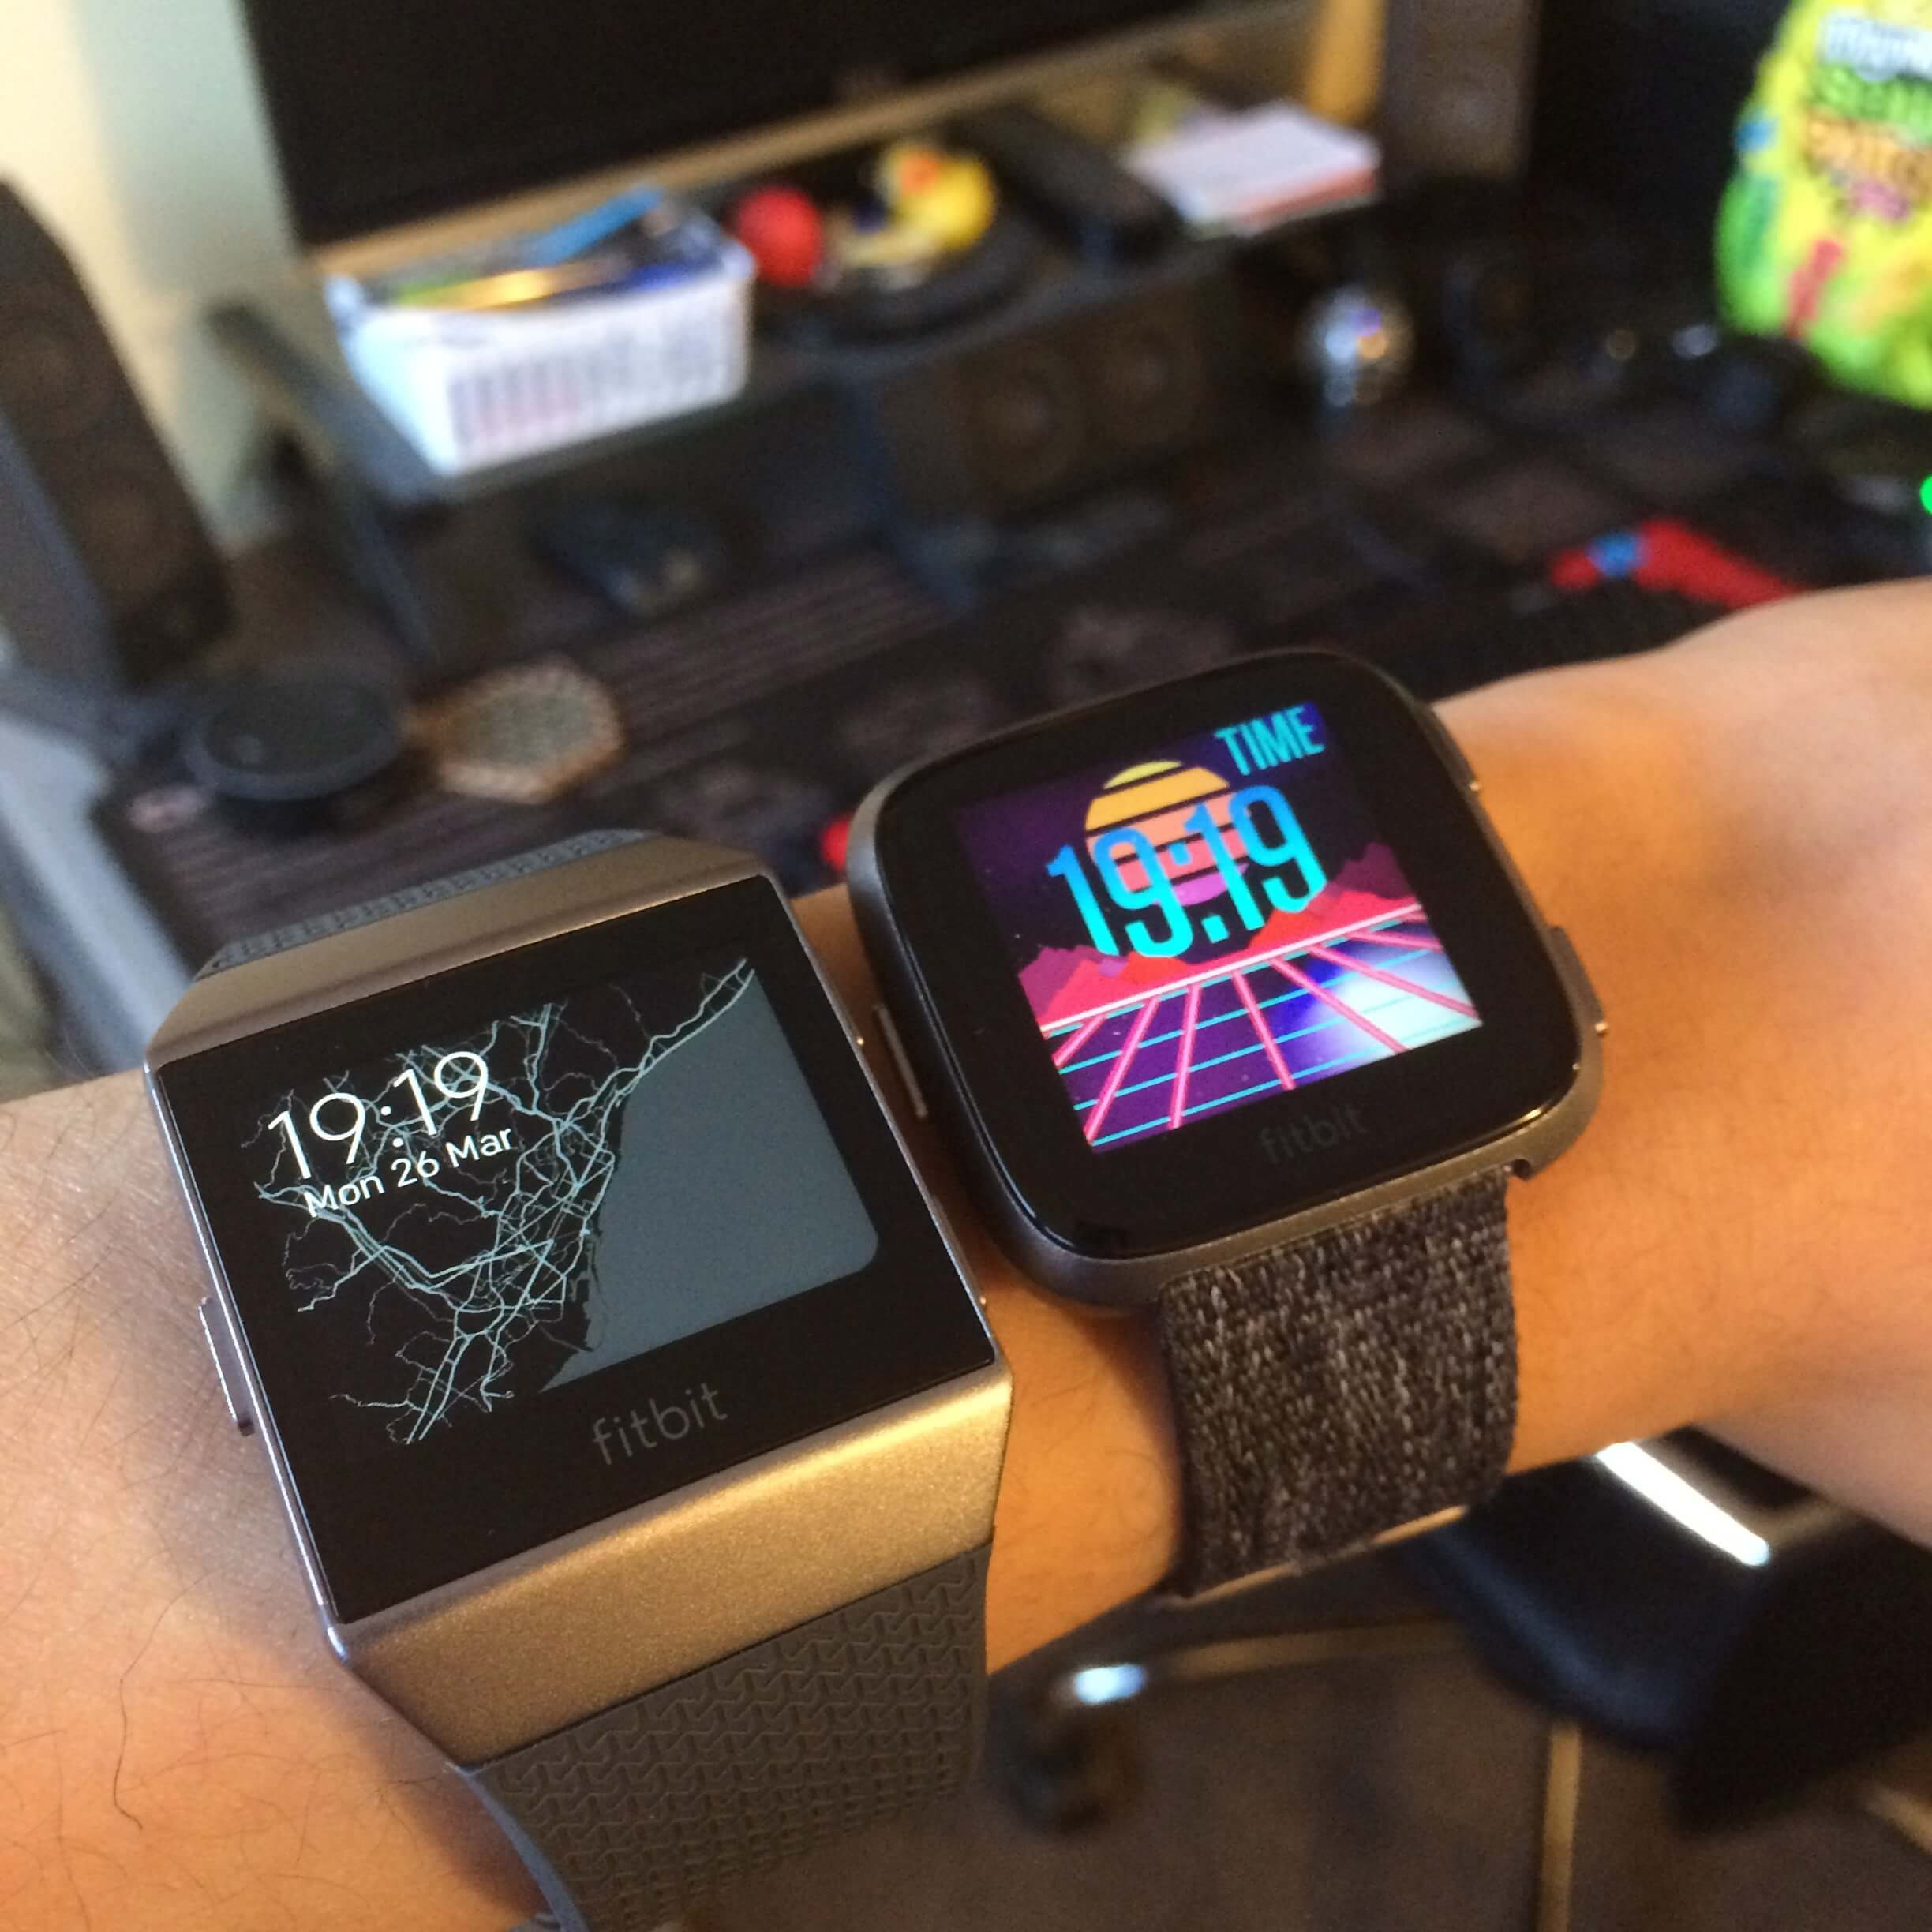 Fitbit Versa on wrist compared to Fitbit Ionic